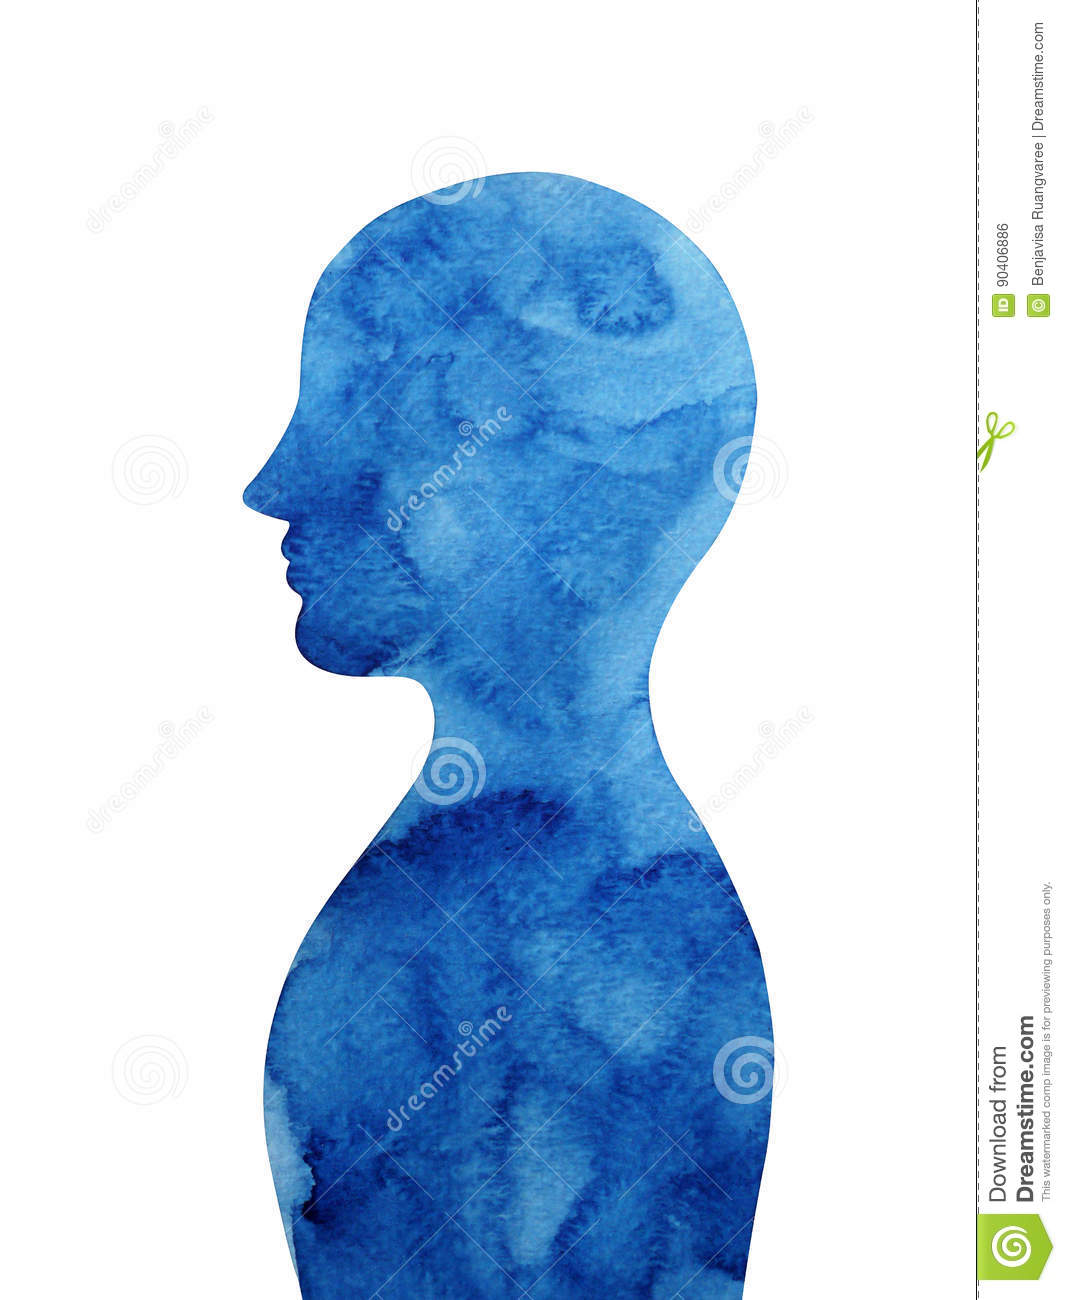 Dark blue human head thought mind, abstract watercolor painting